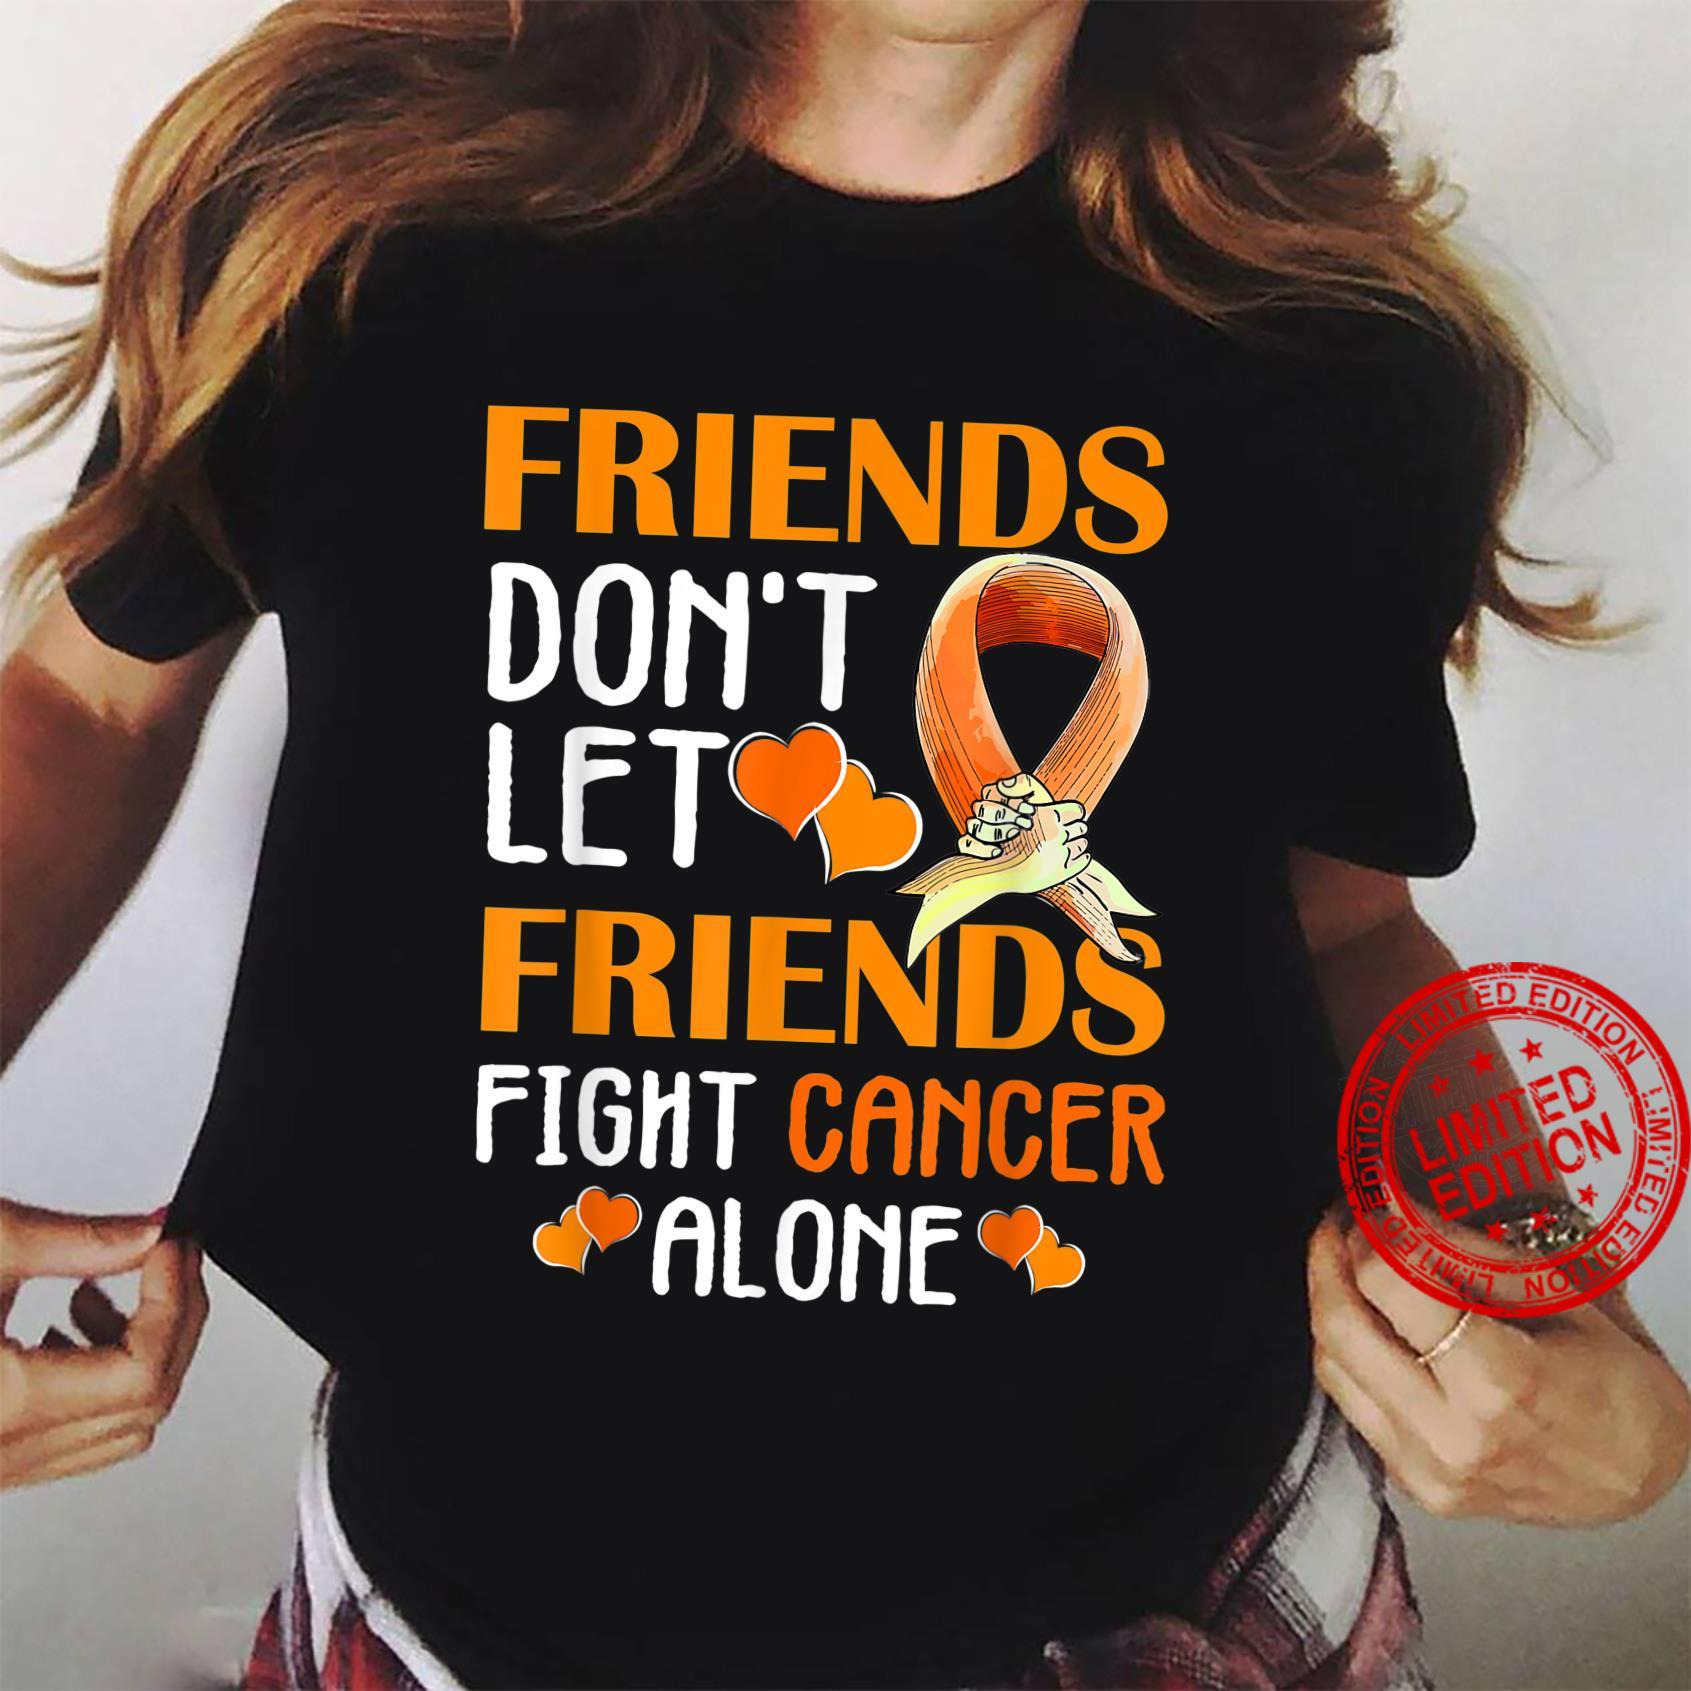 Friends don't let friends fight leukemia cancer alone Shirt ladies tee